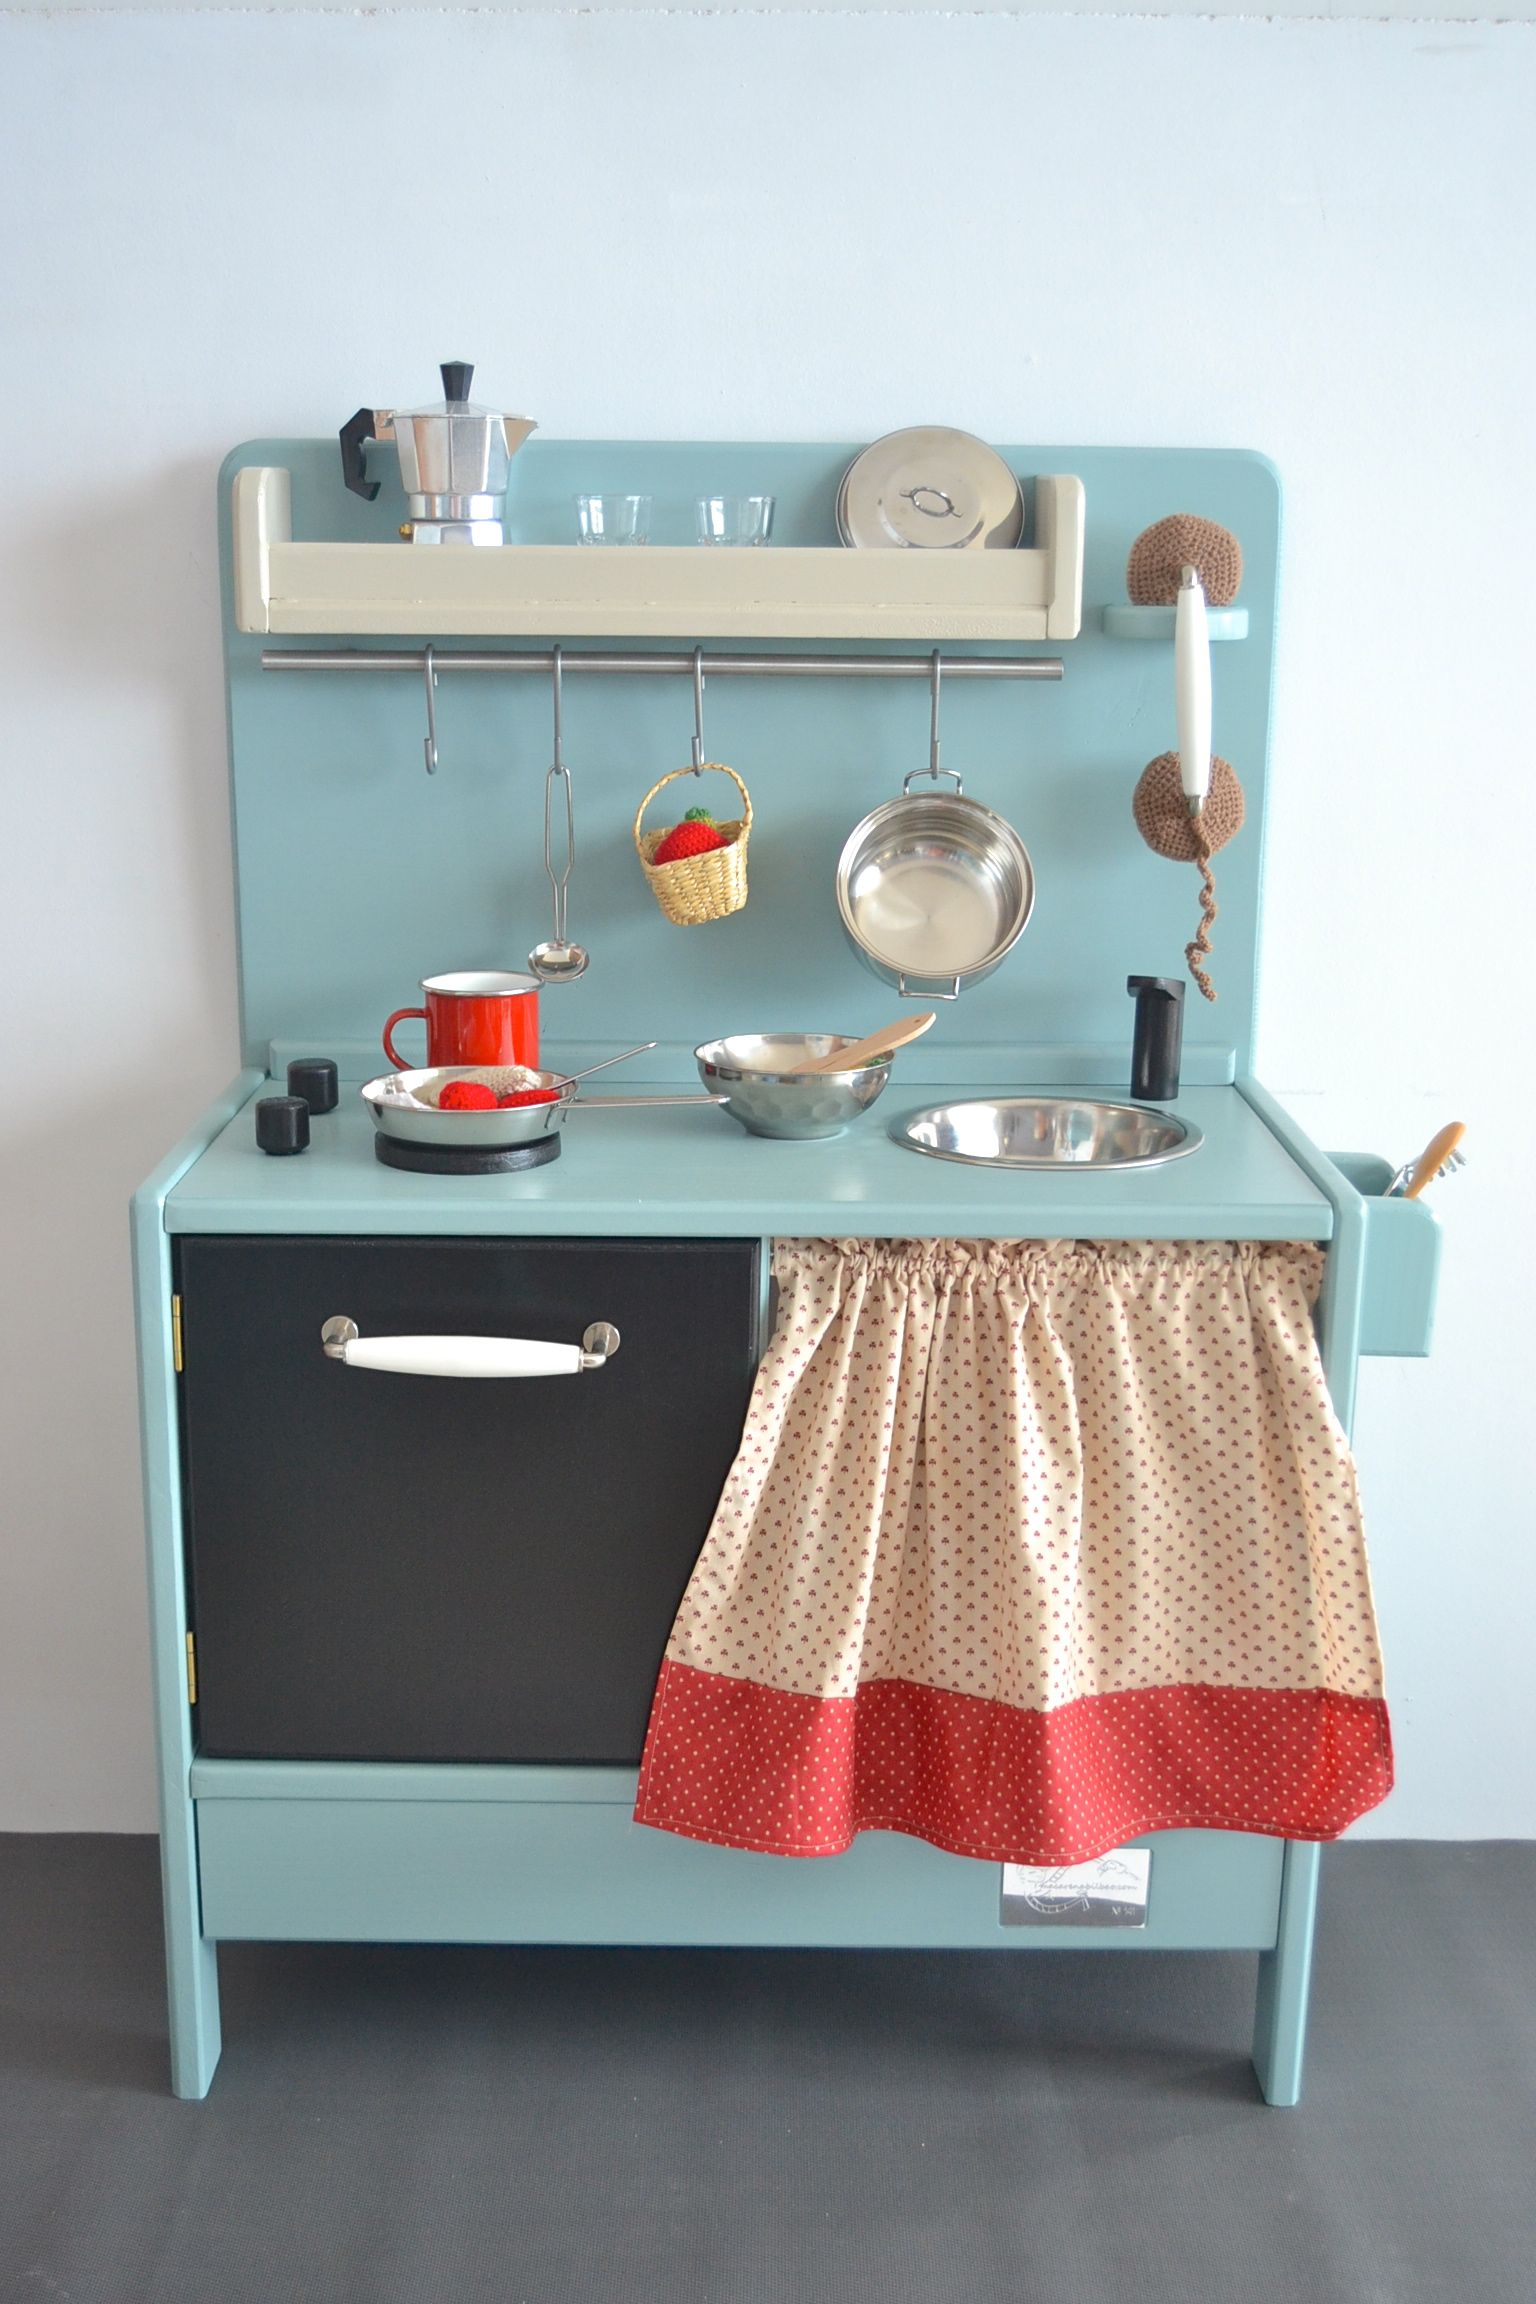 Wooden Toy Kitchen. Personalized model | Living with children ...